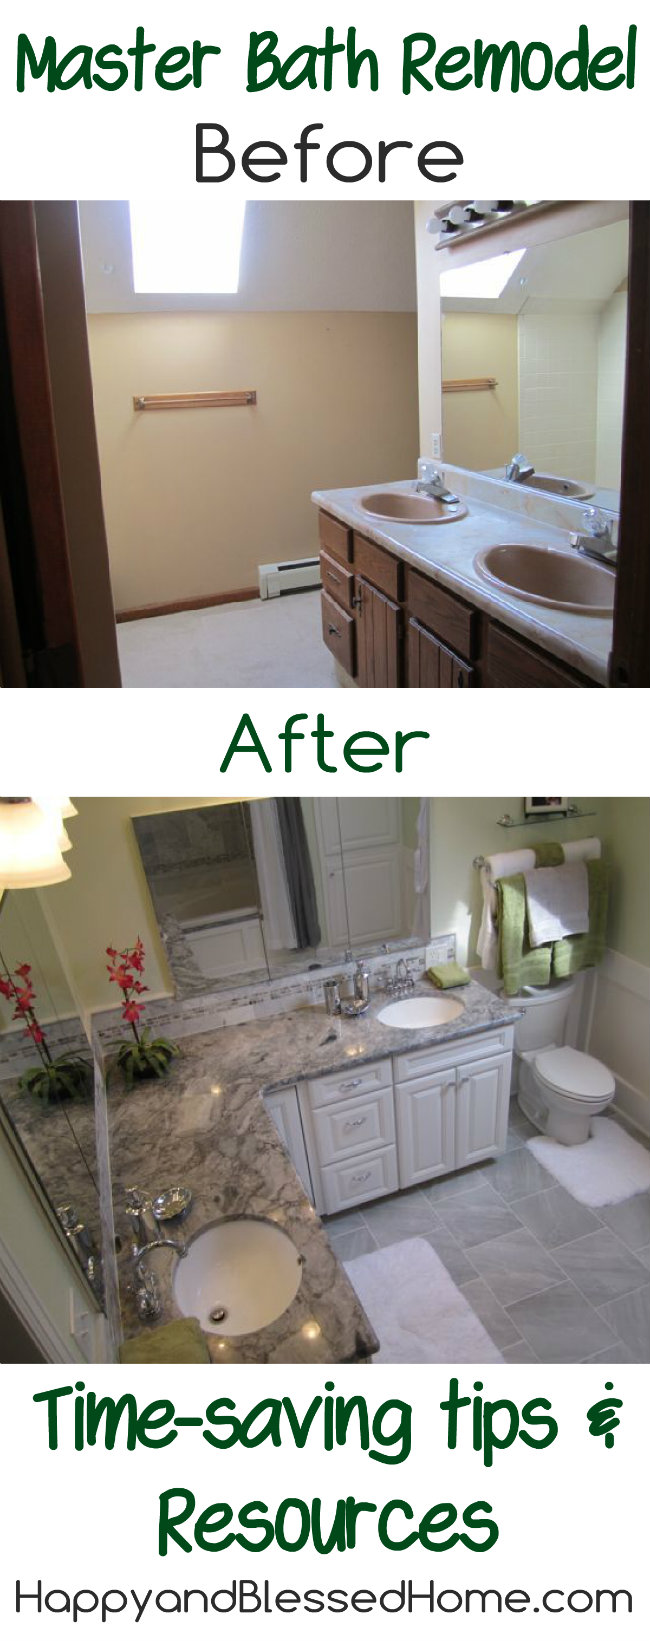 Master Bath Remodel with Marble Granite and Chrome with Tips and Resources from HappyandBlessedHome.com